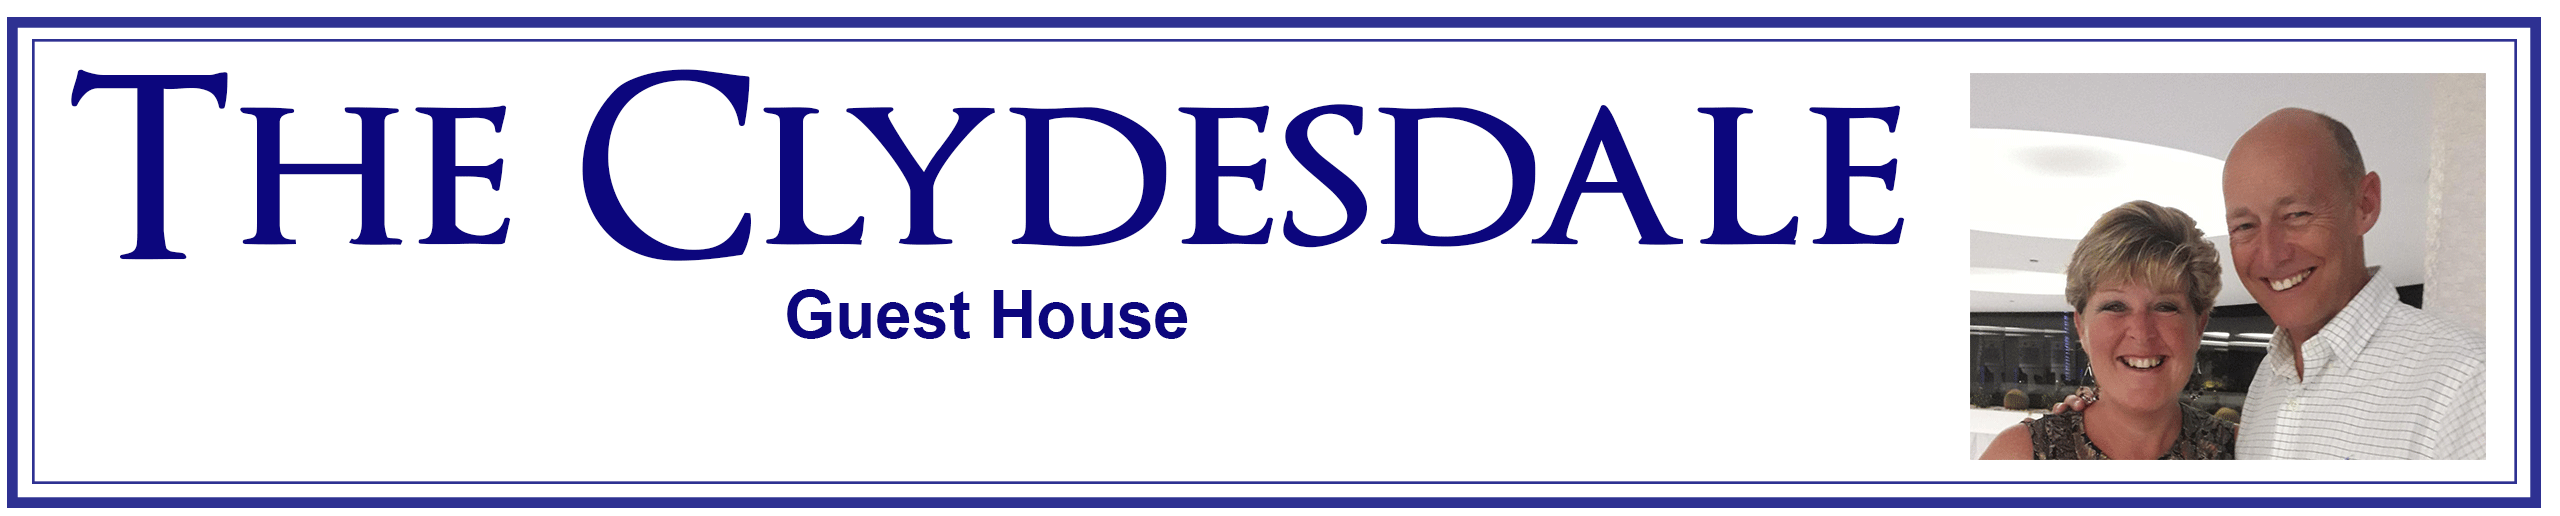 The Clydesdale Guest House